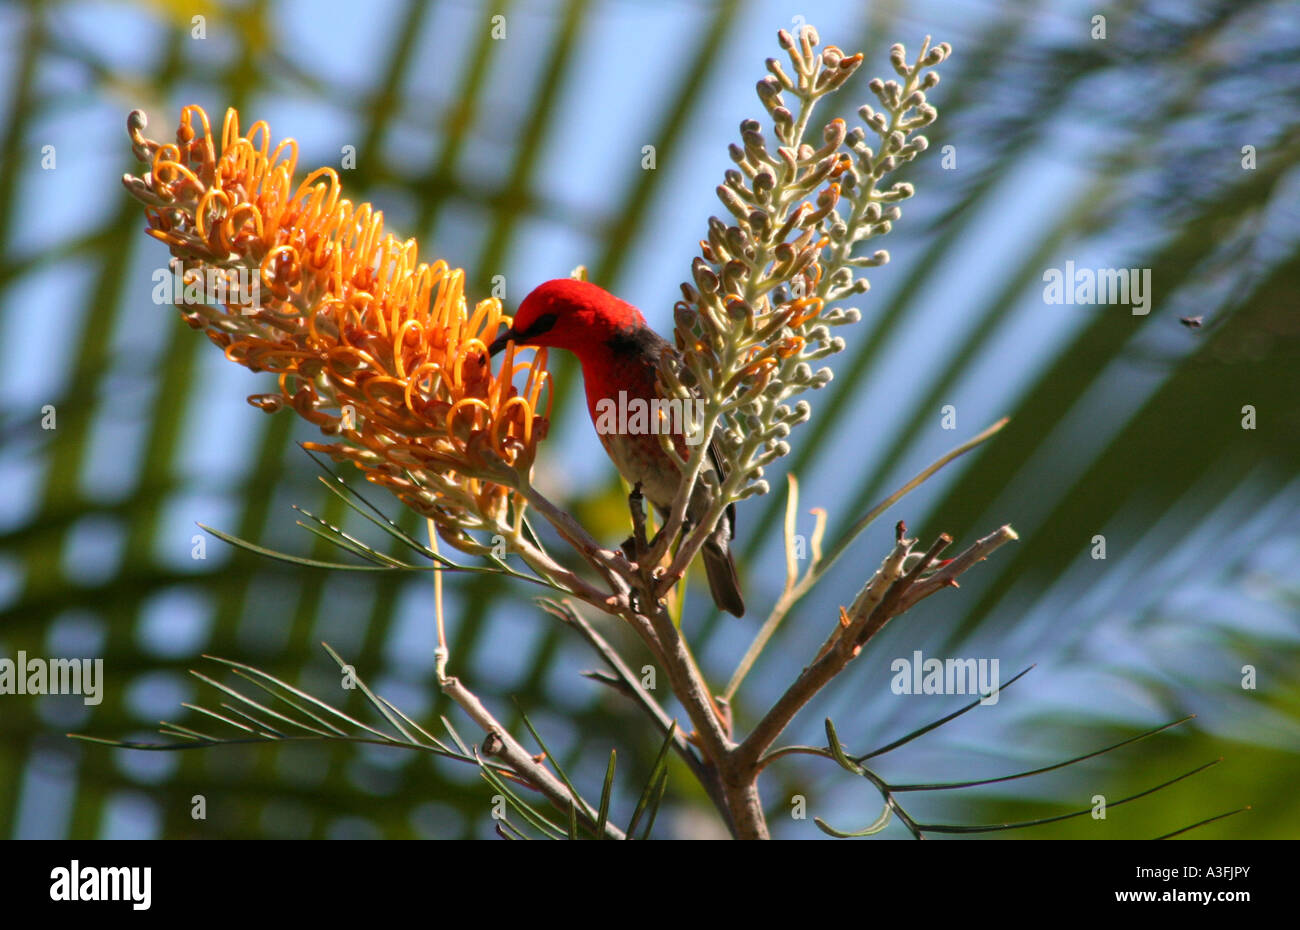 A SCARLET HONEYEATER FEEDING ON GREVILLEA TREES BAPDa9131 - Stock Image